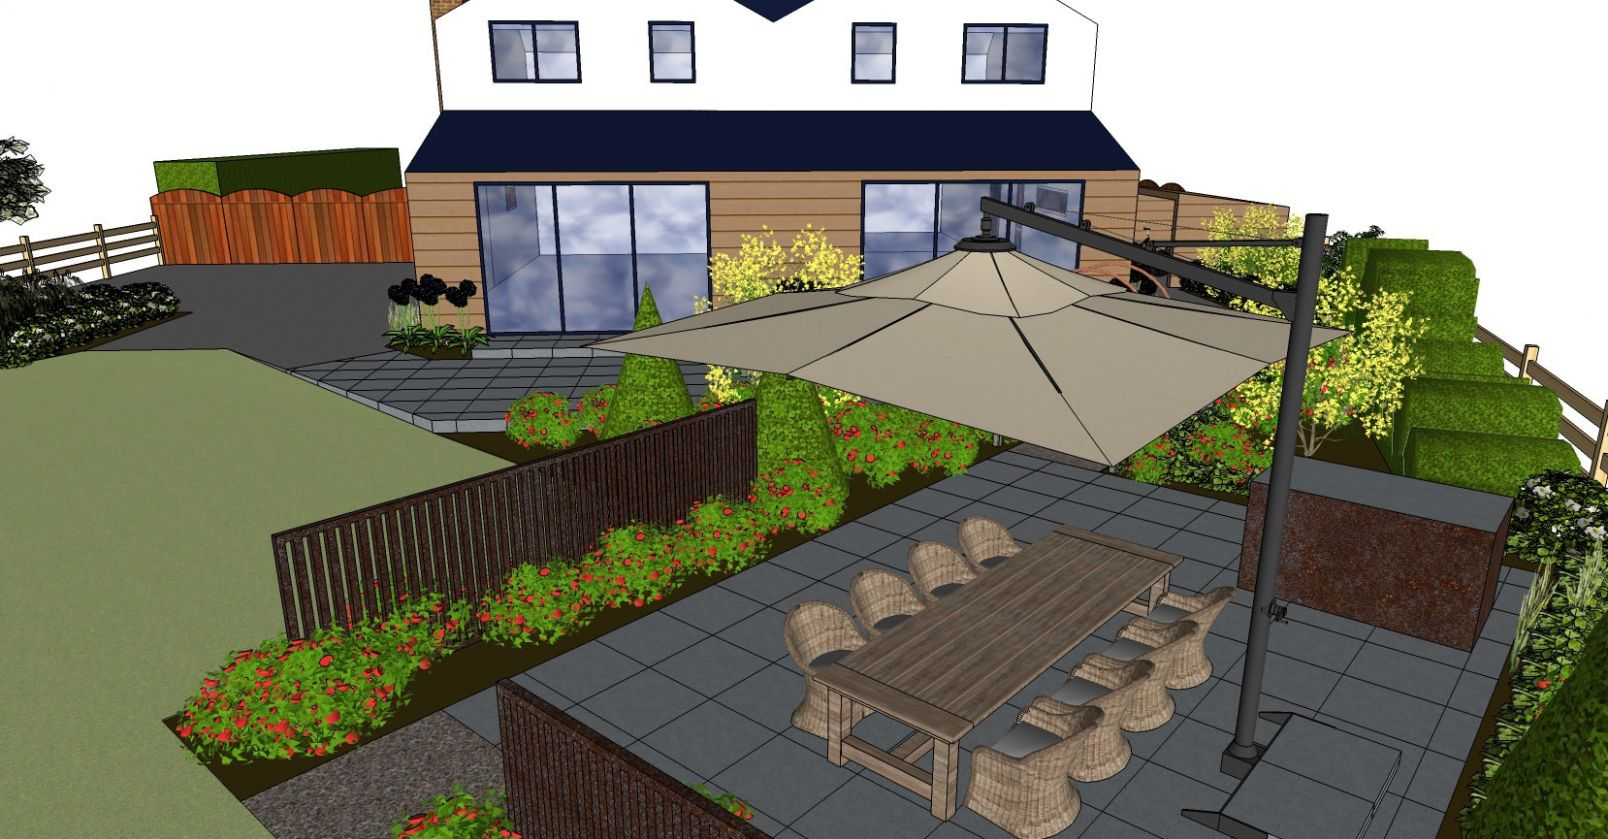 New Build Garden Ideas - TDS - garden ideas new build